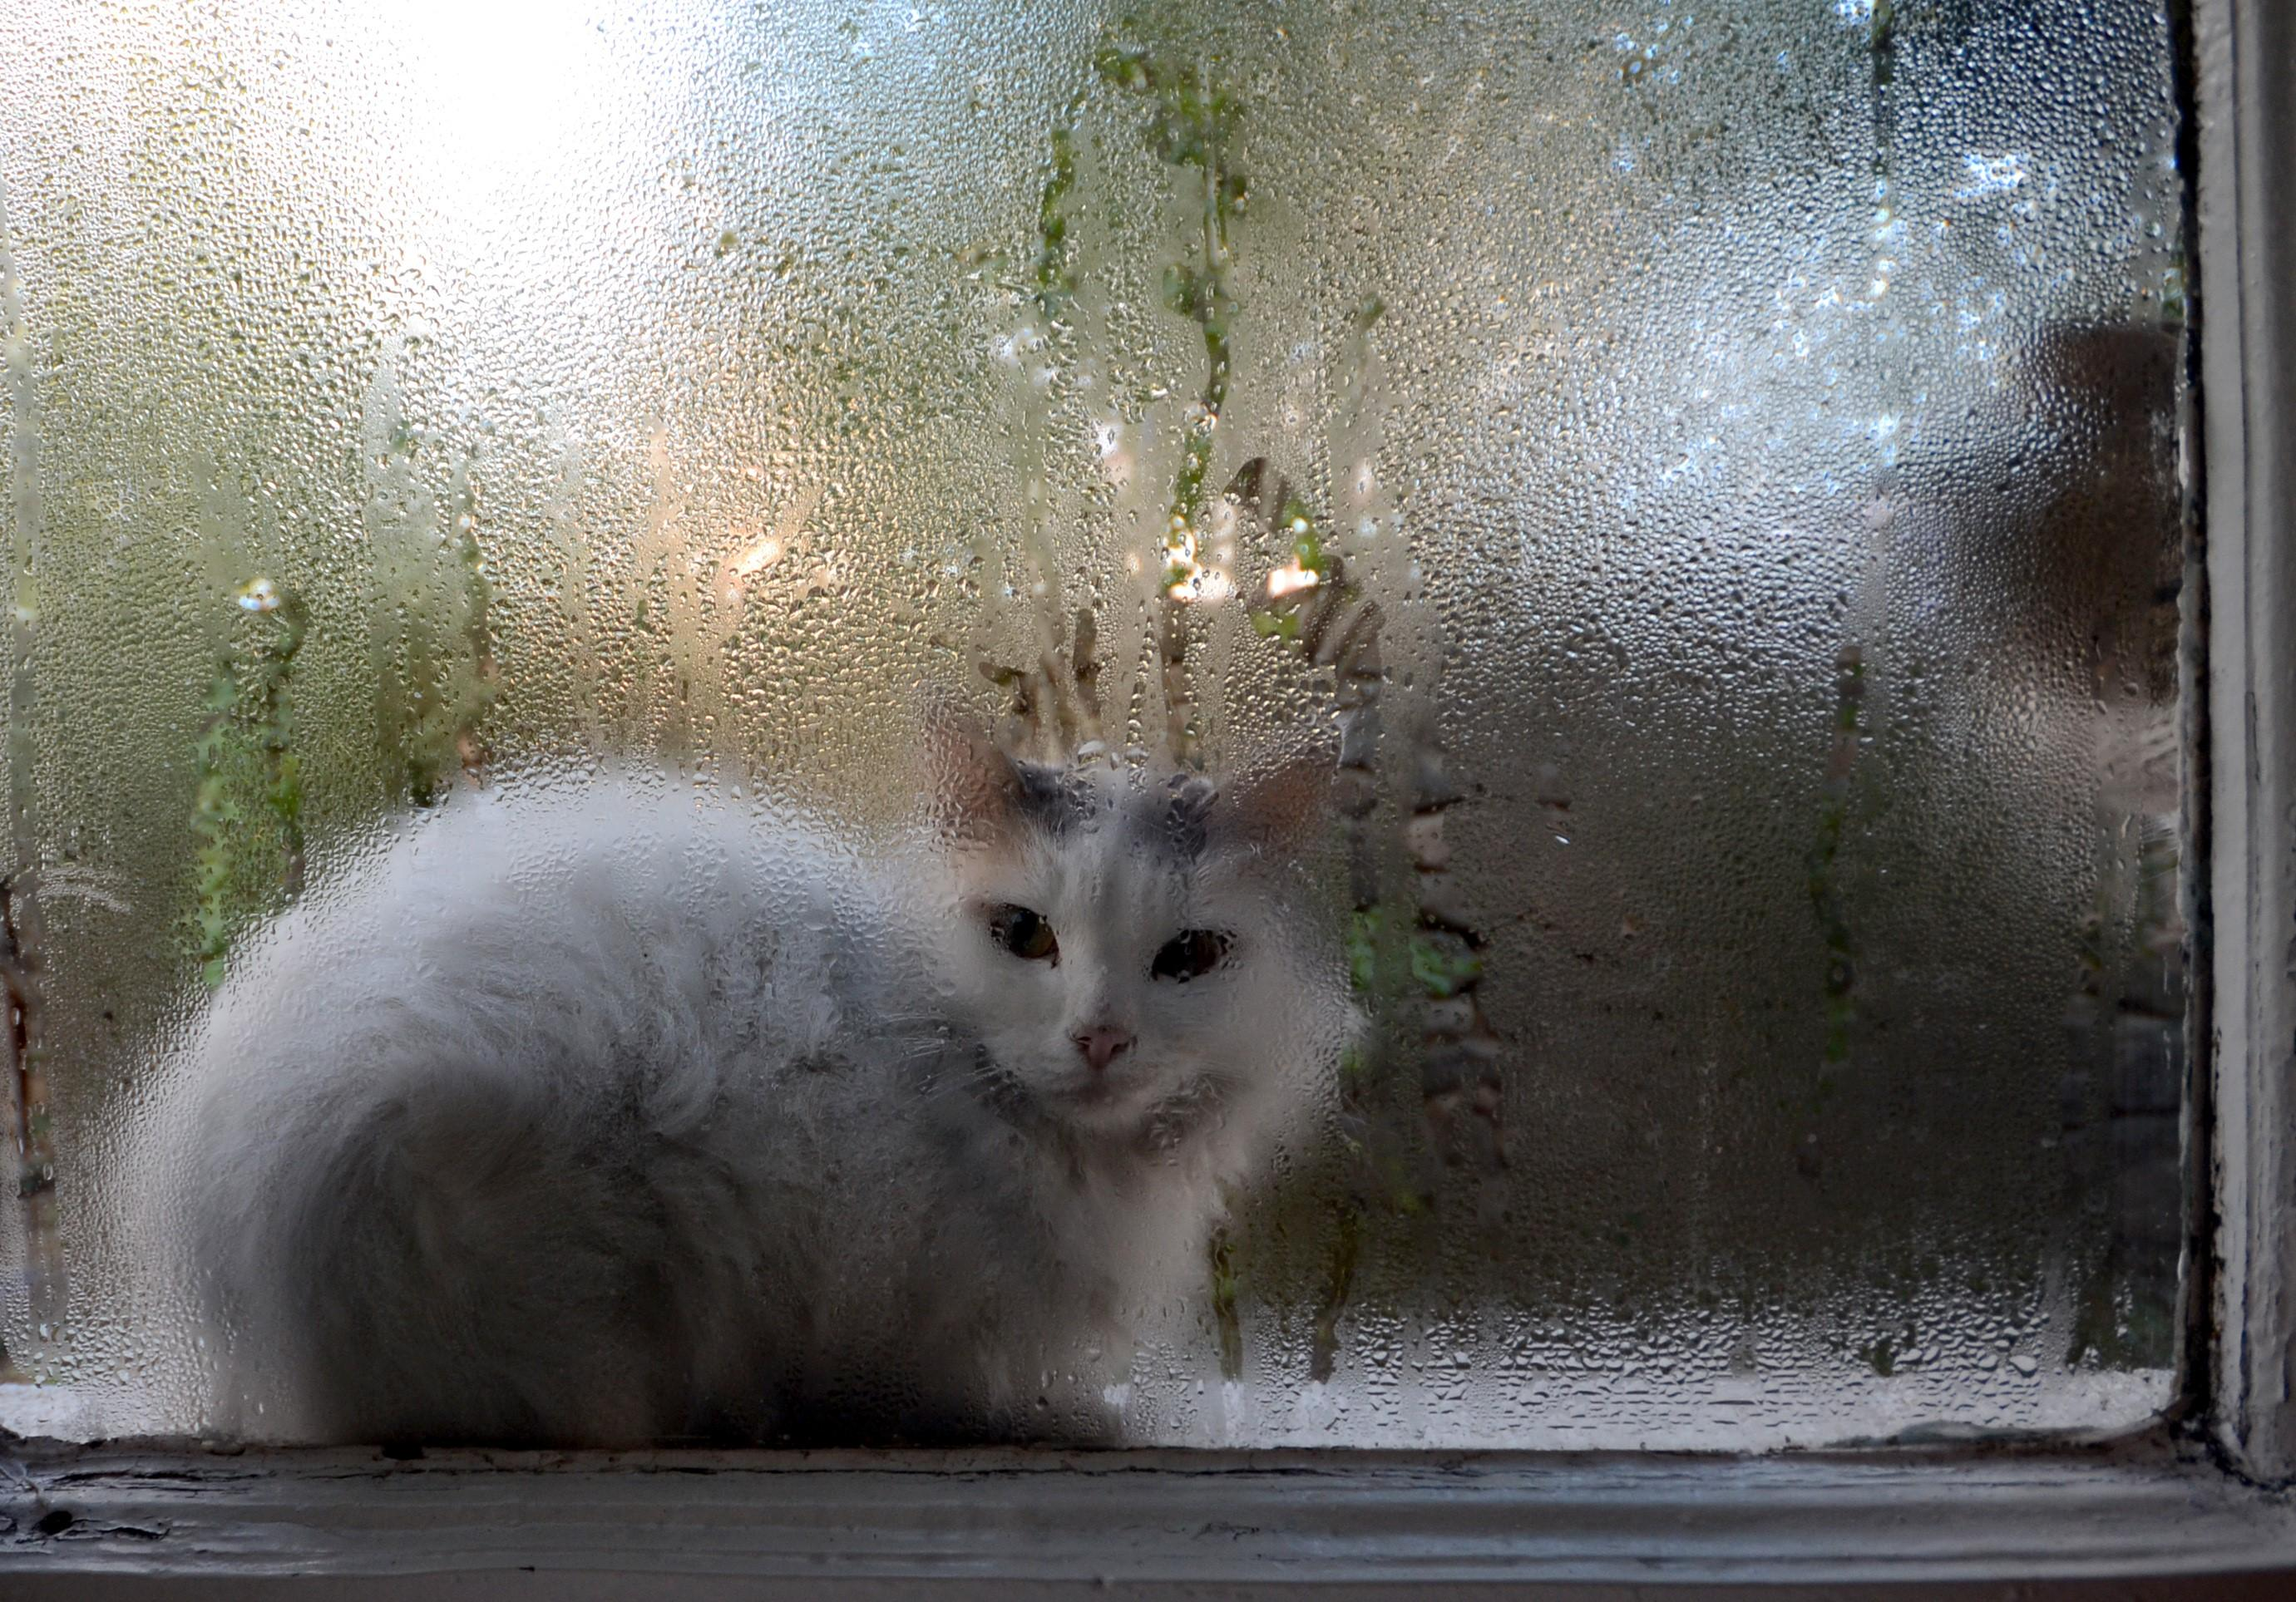 A cat looks through a window with condensation